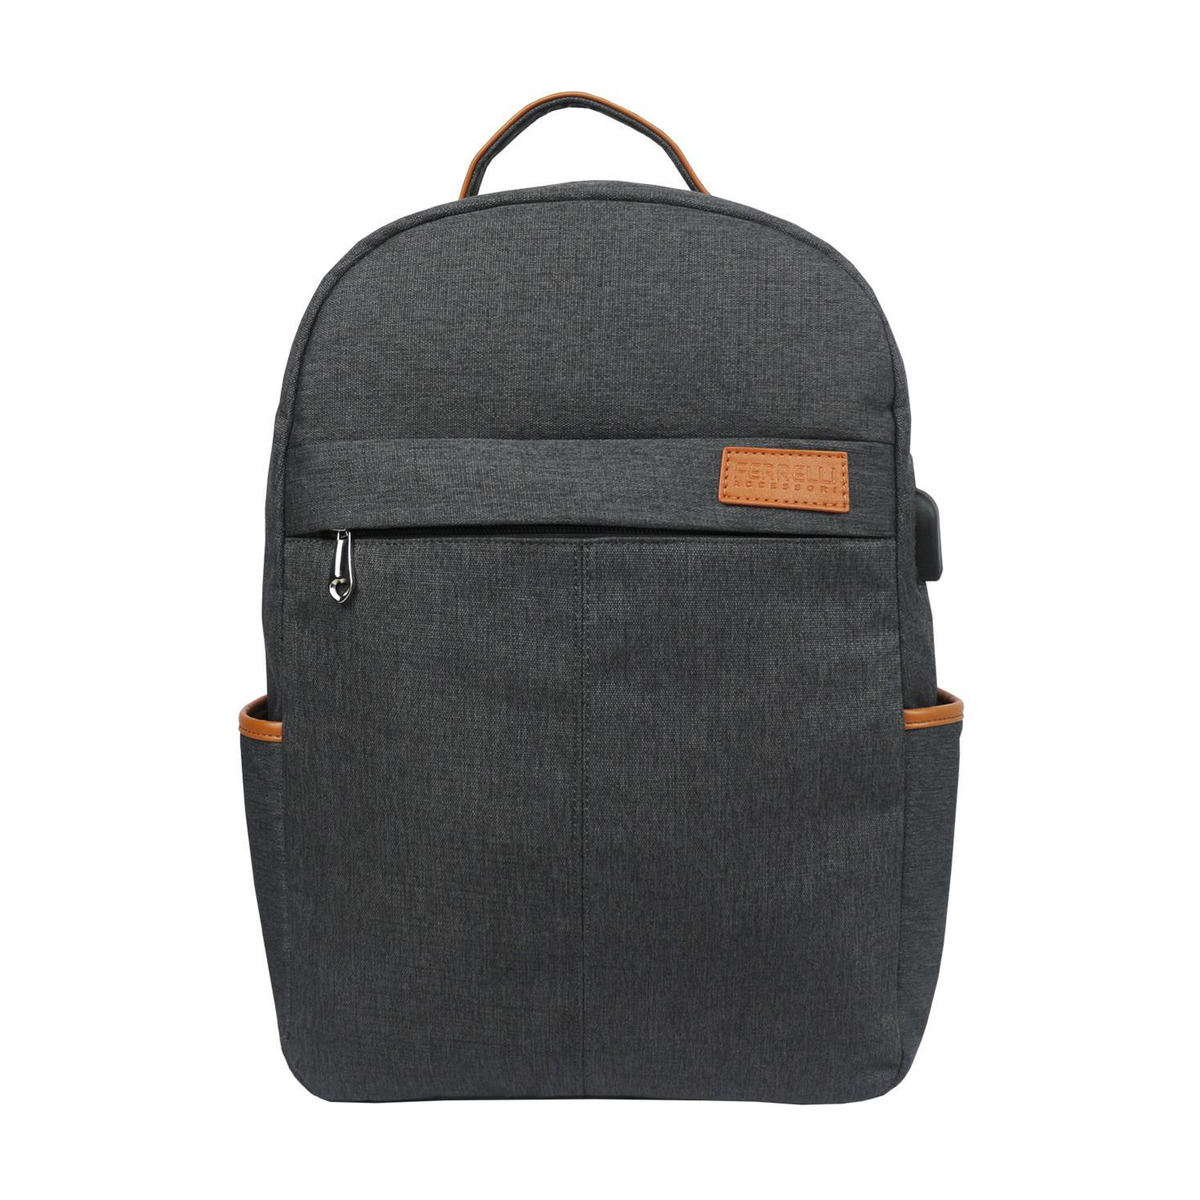 FERRELLI CASUAL BACKPACK 14 GY Power.no